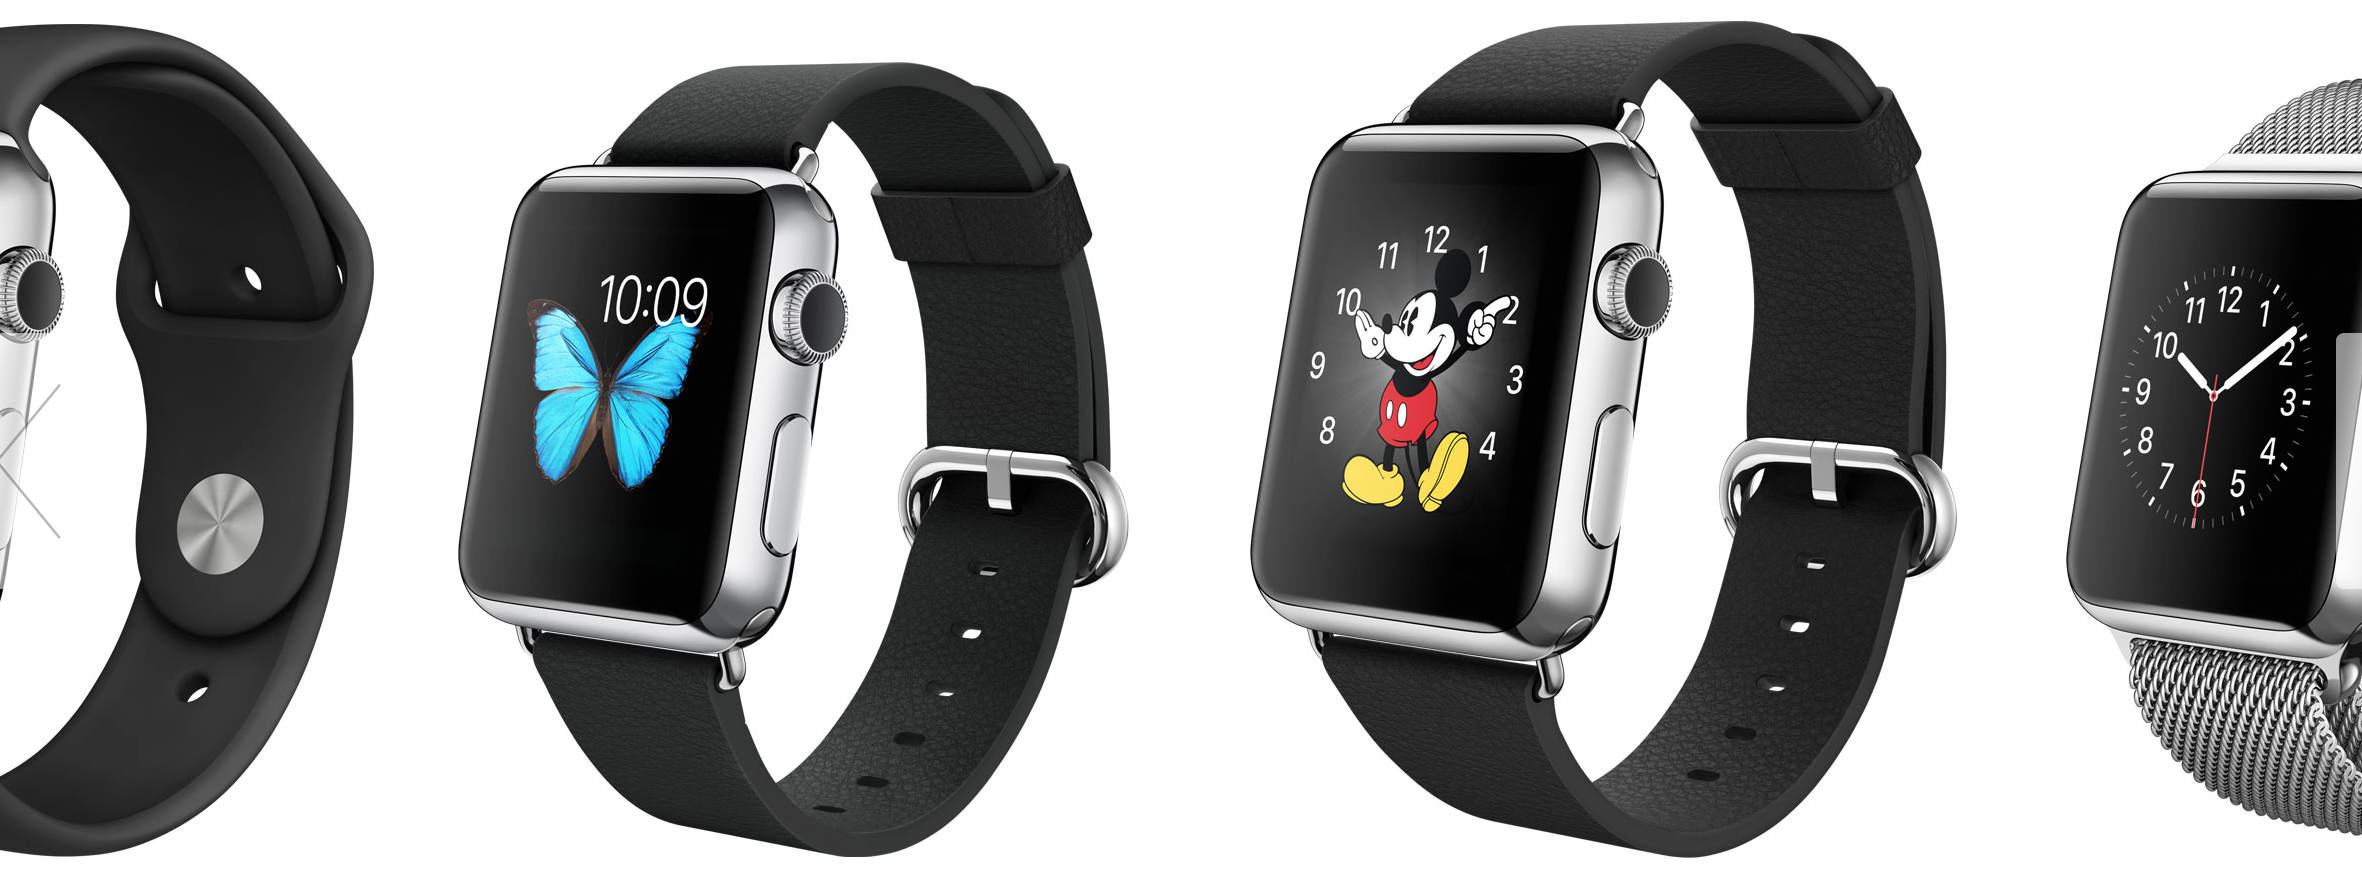 Lingering questions about the Apple Watch are important ones